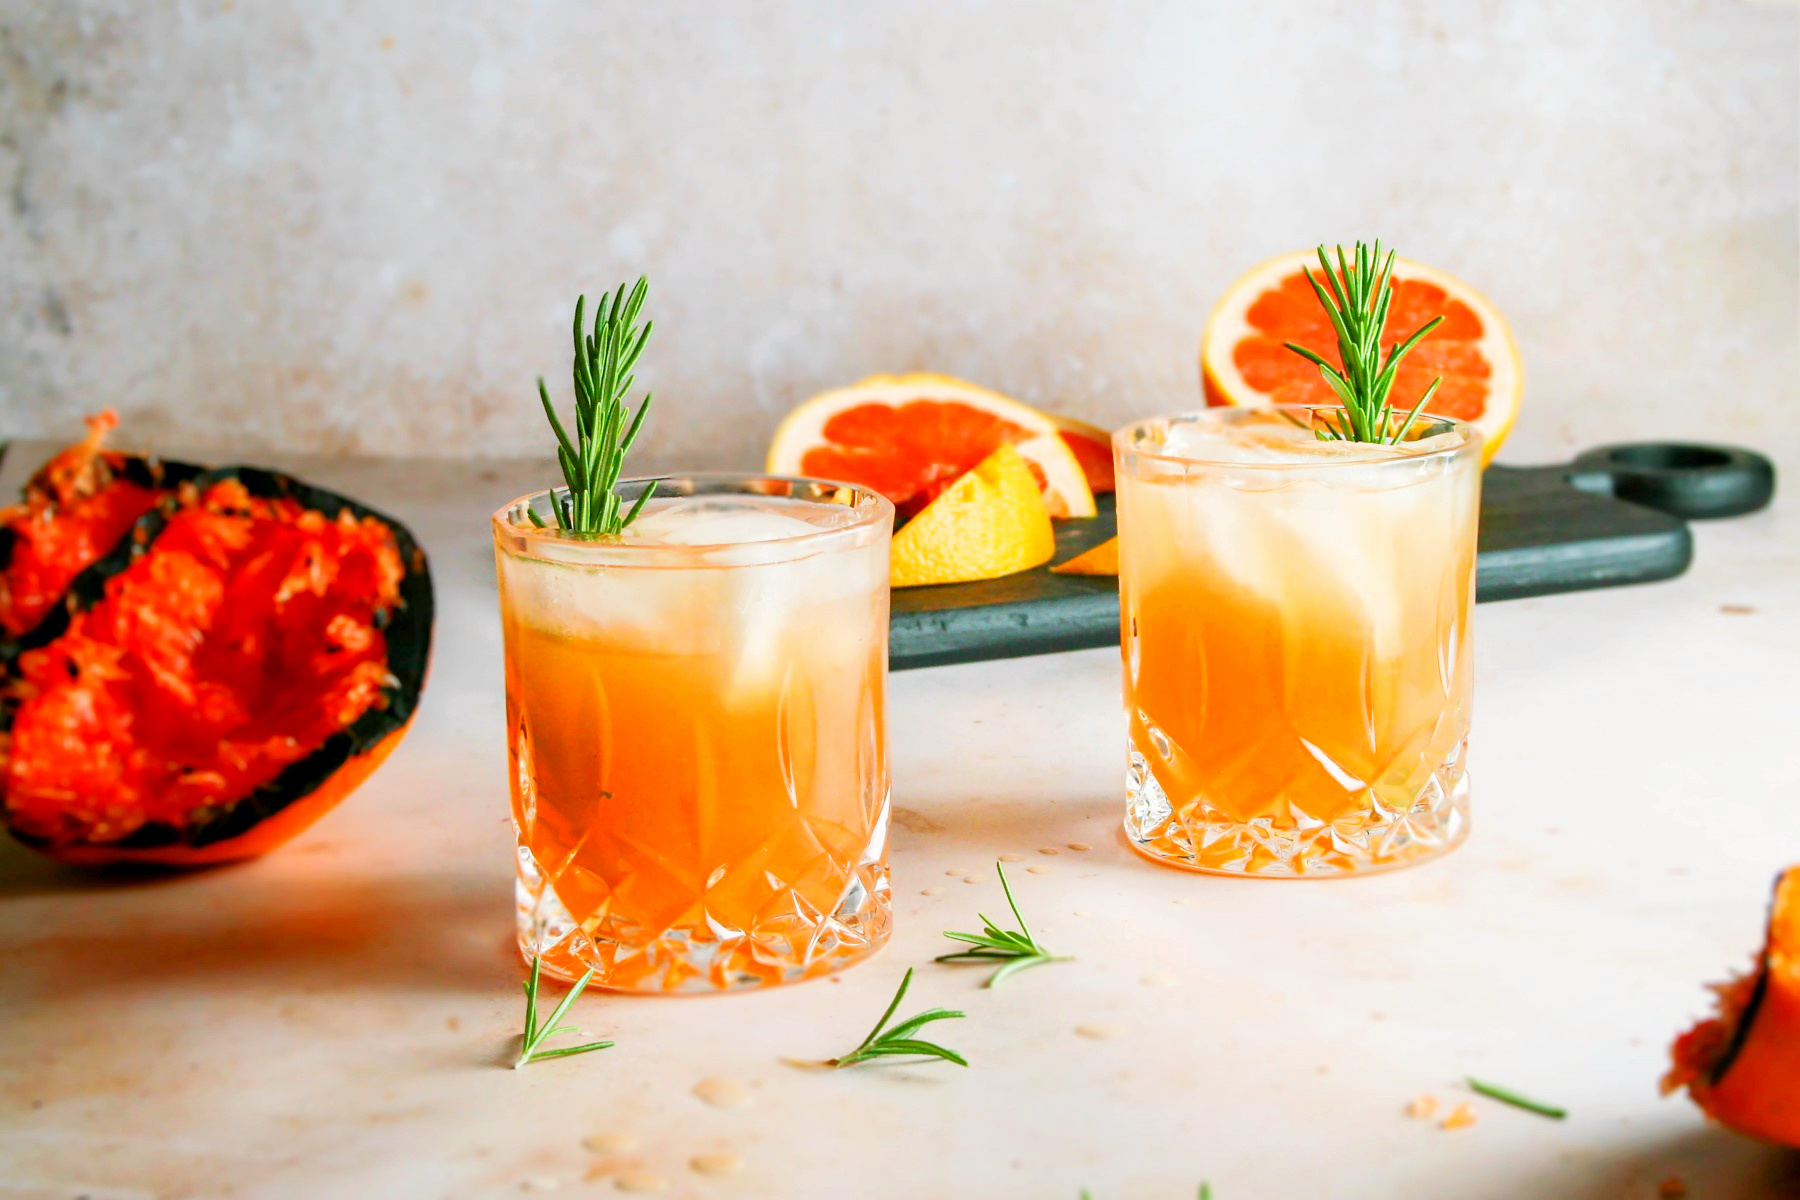 2 old fashion glasses with grilled grapefruit greyhounds over ice and sprigs of rosemary in each .